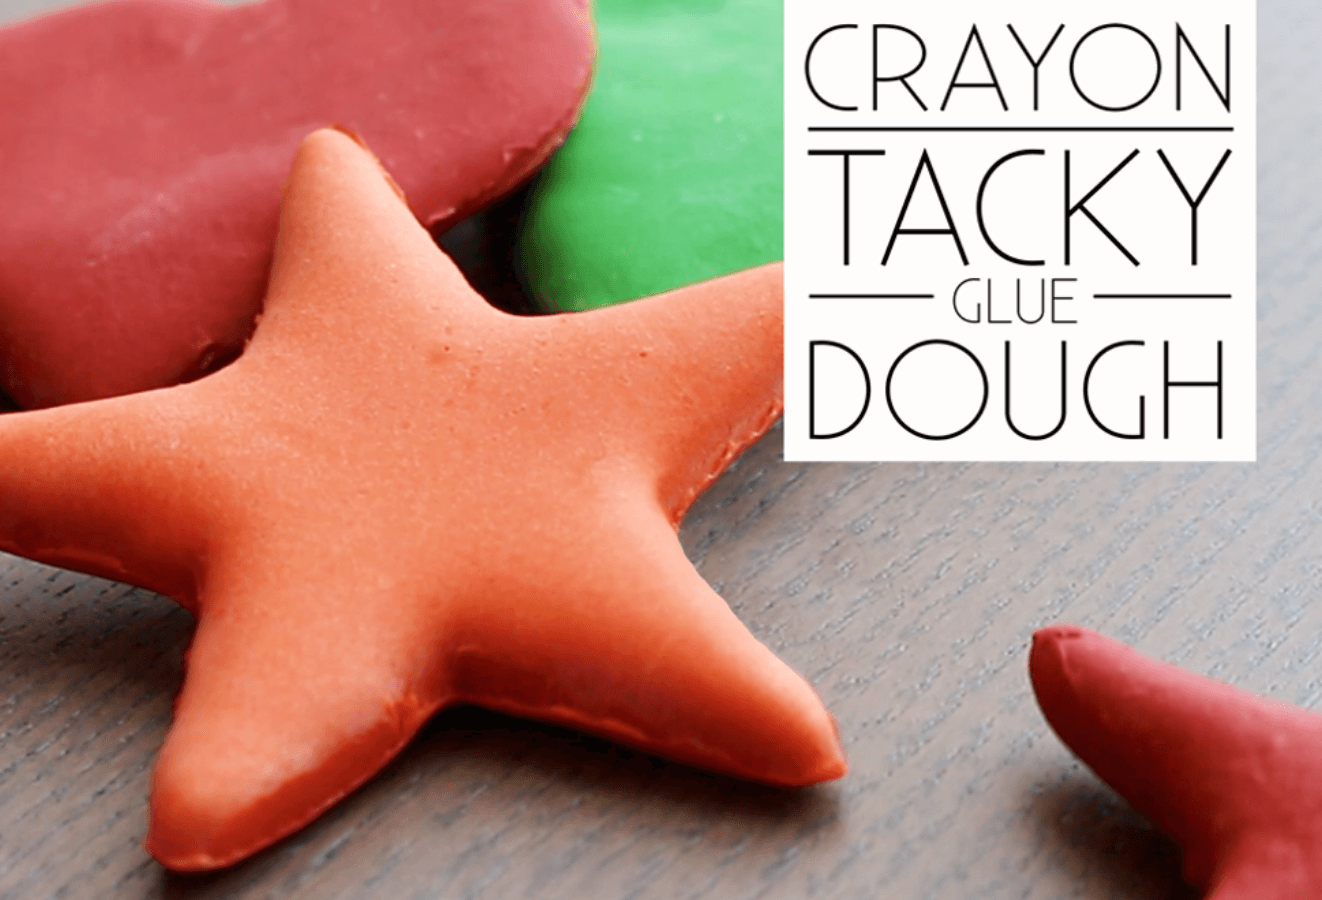 Picture of Crayon Tacky Glue Dough